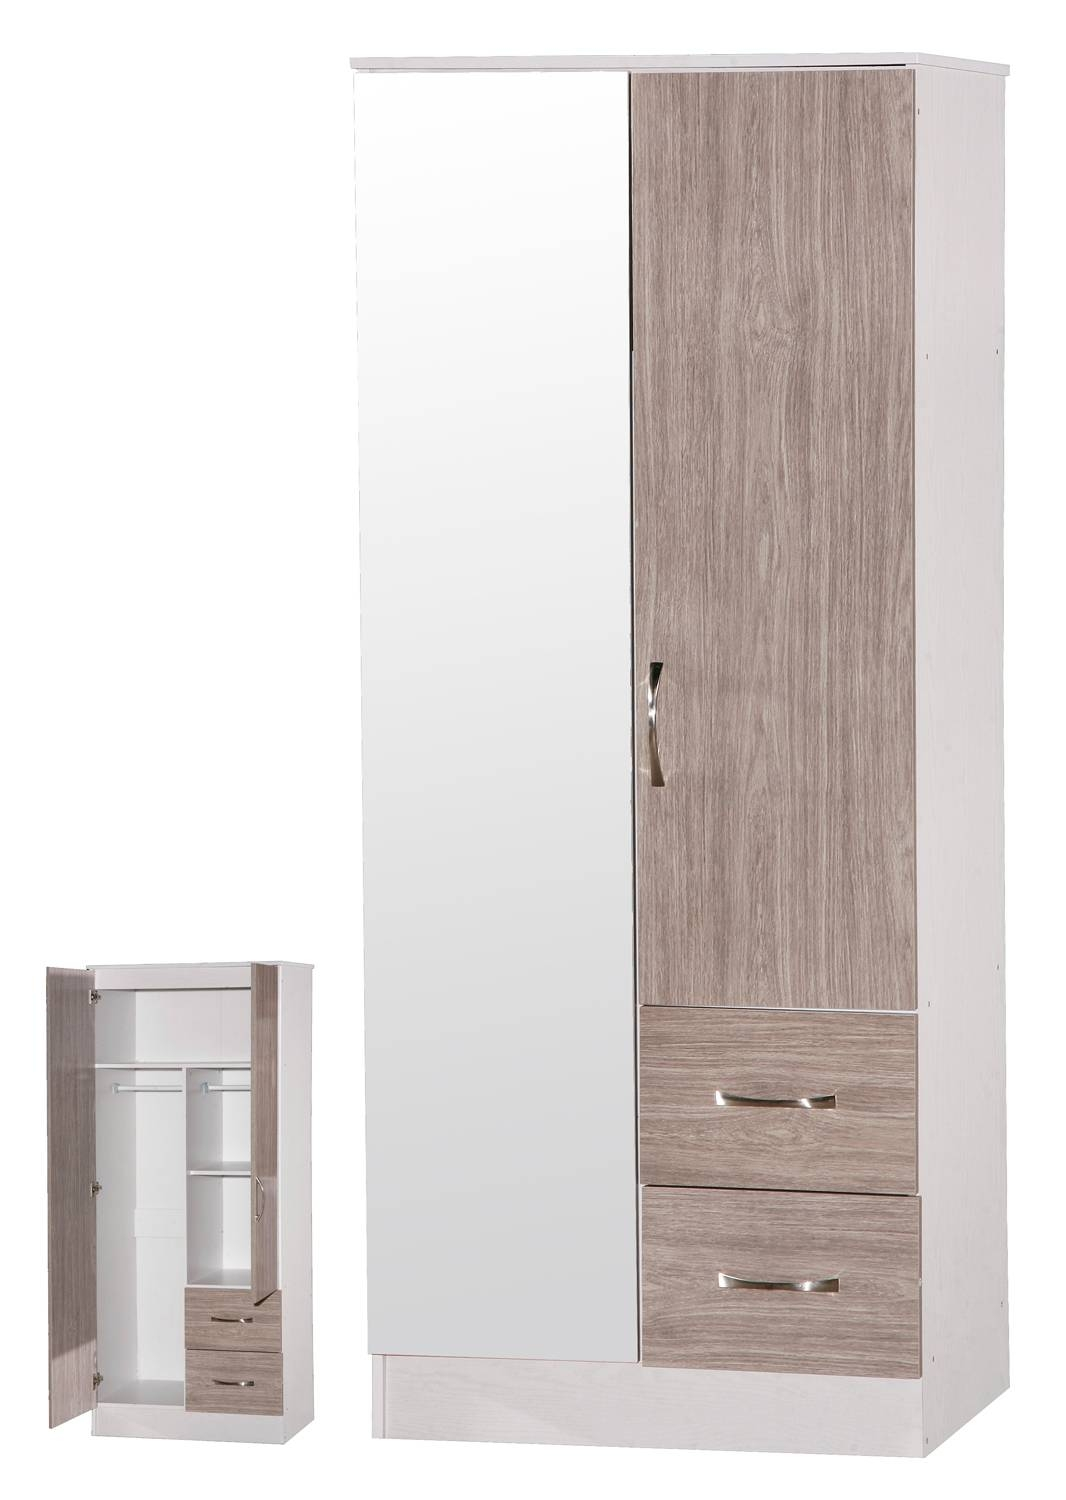 Marina Grey Oak & White High Gloss Mirrored Combination Wardrobe in Oak Mirrored Wardrobes (Image 6 of 15)